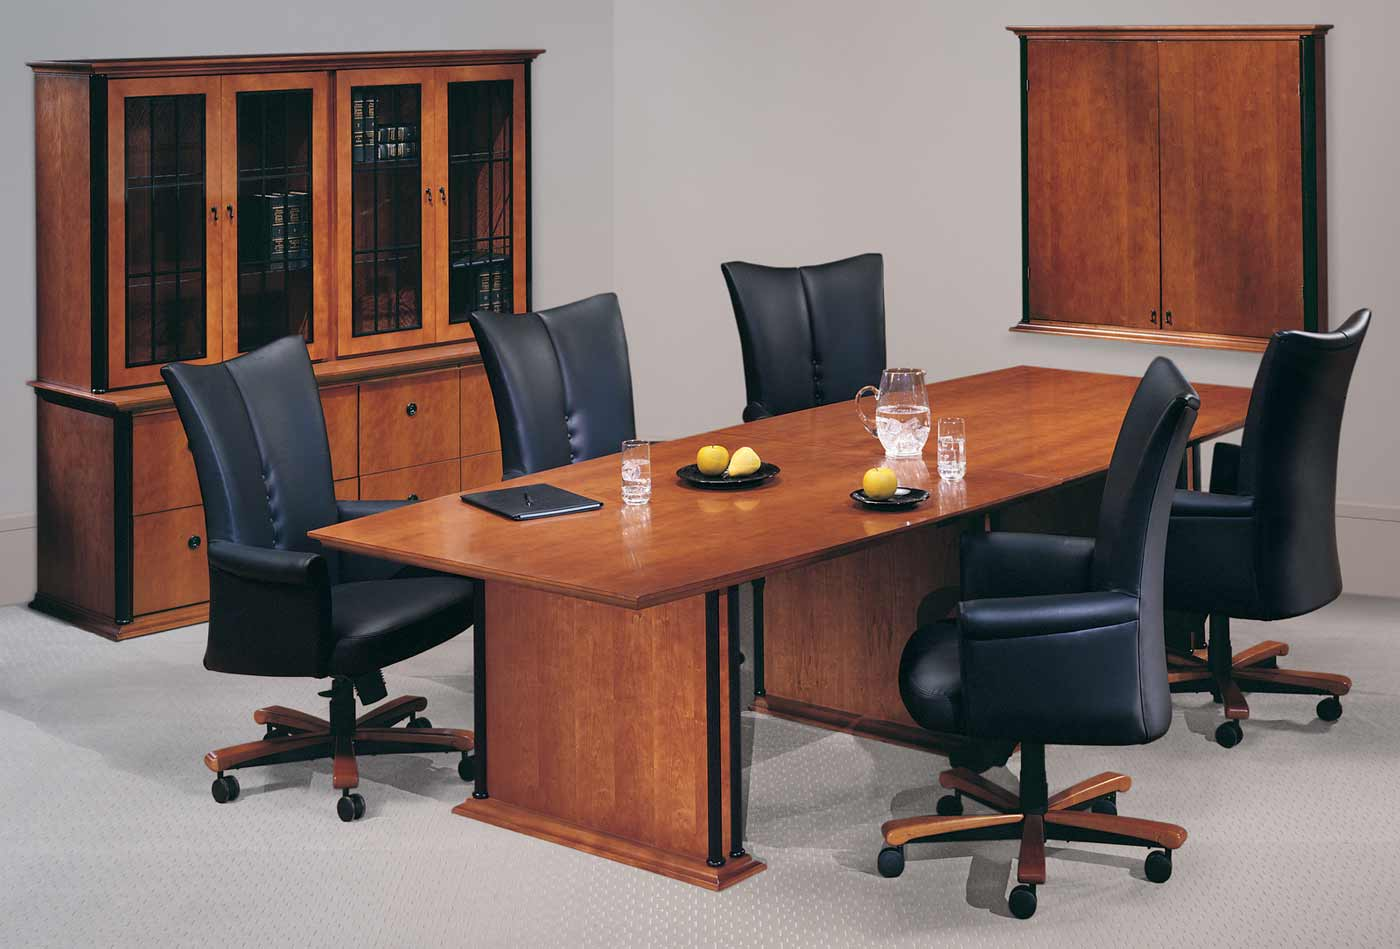 Coona New and Remanufactured Office Furniture for Conference Room